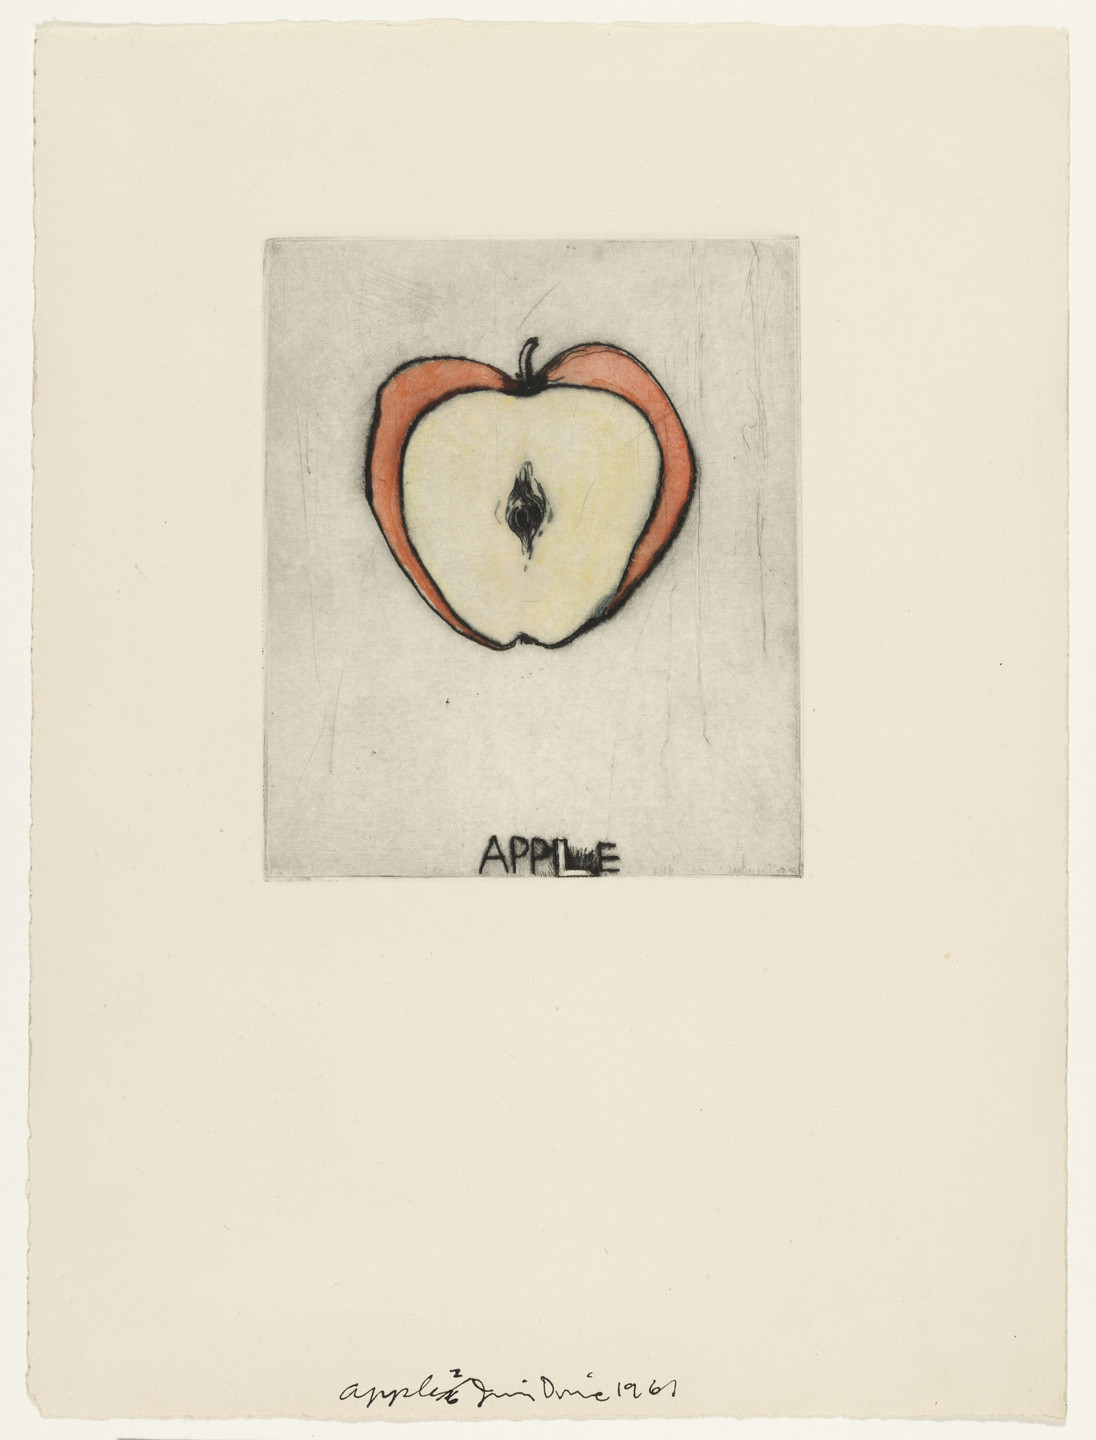 Jim Dine. Apple fromThese Are Ten Useful Objects Which No One Should Be Without When Traveling. 1961